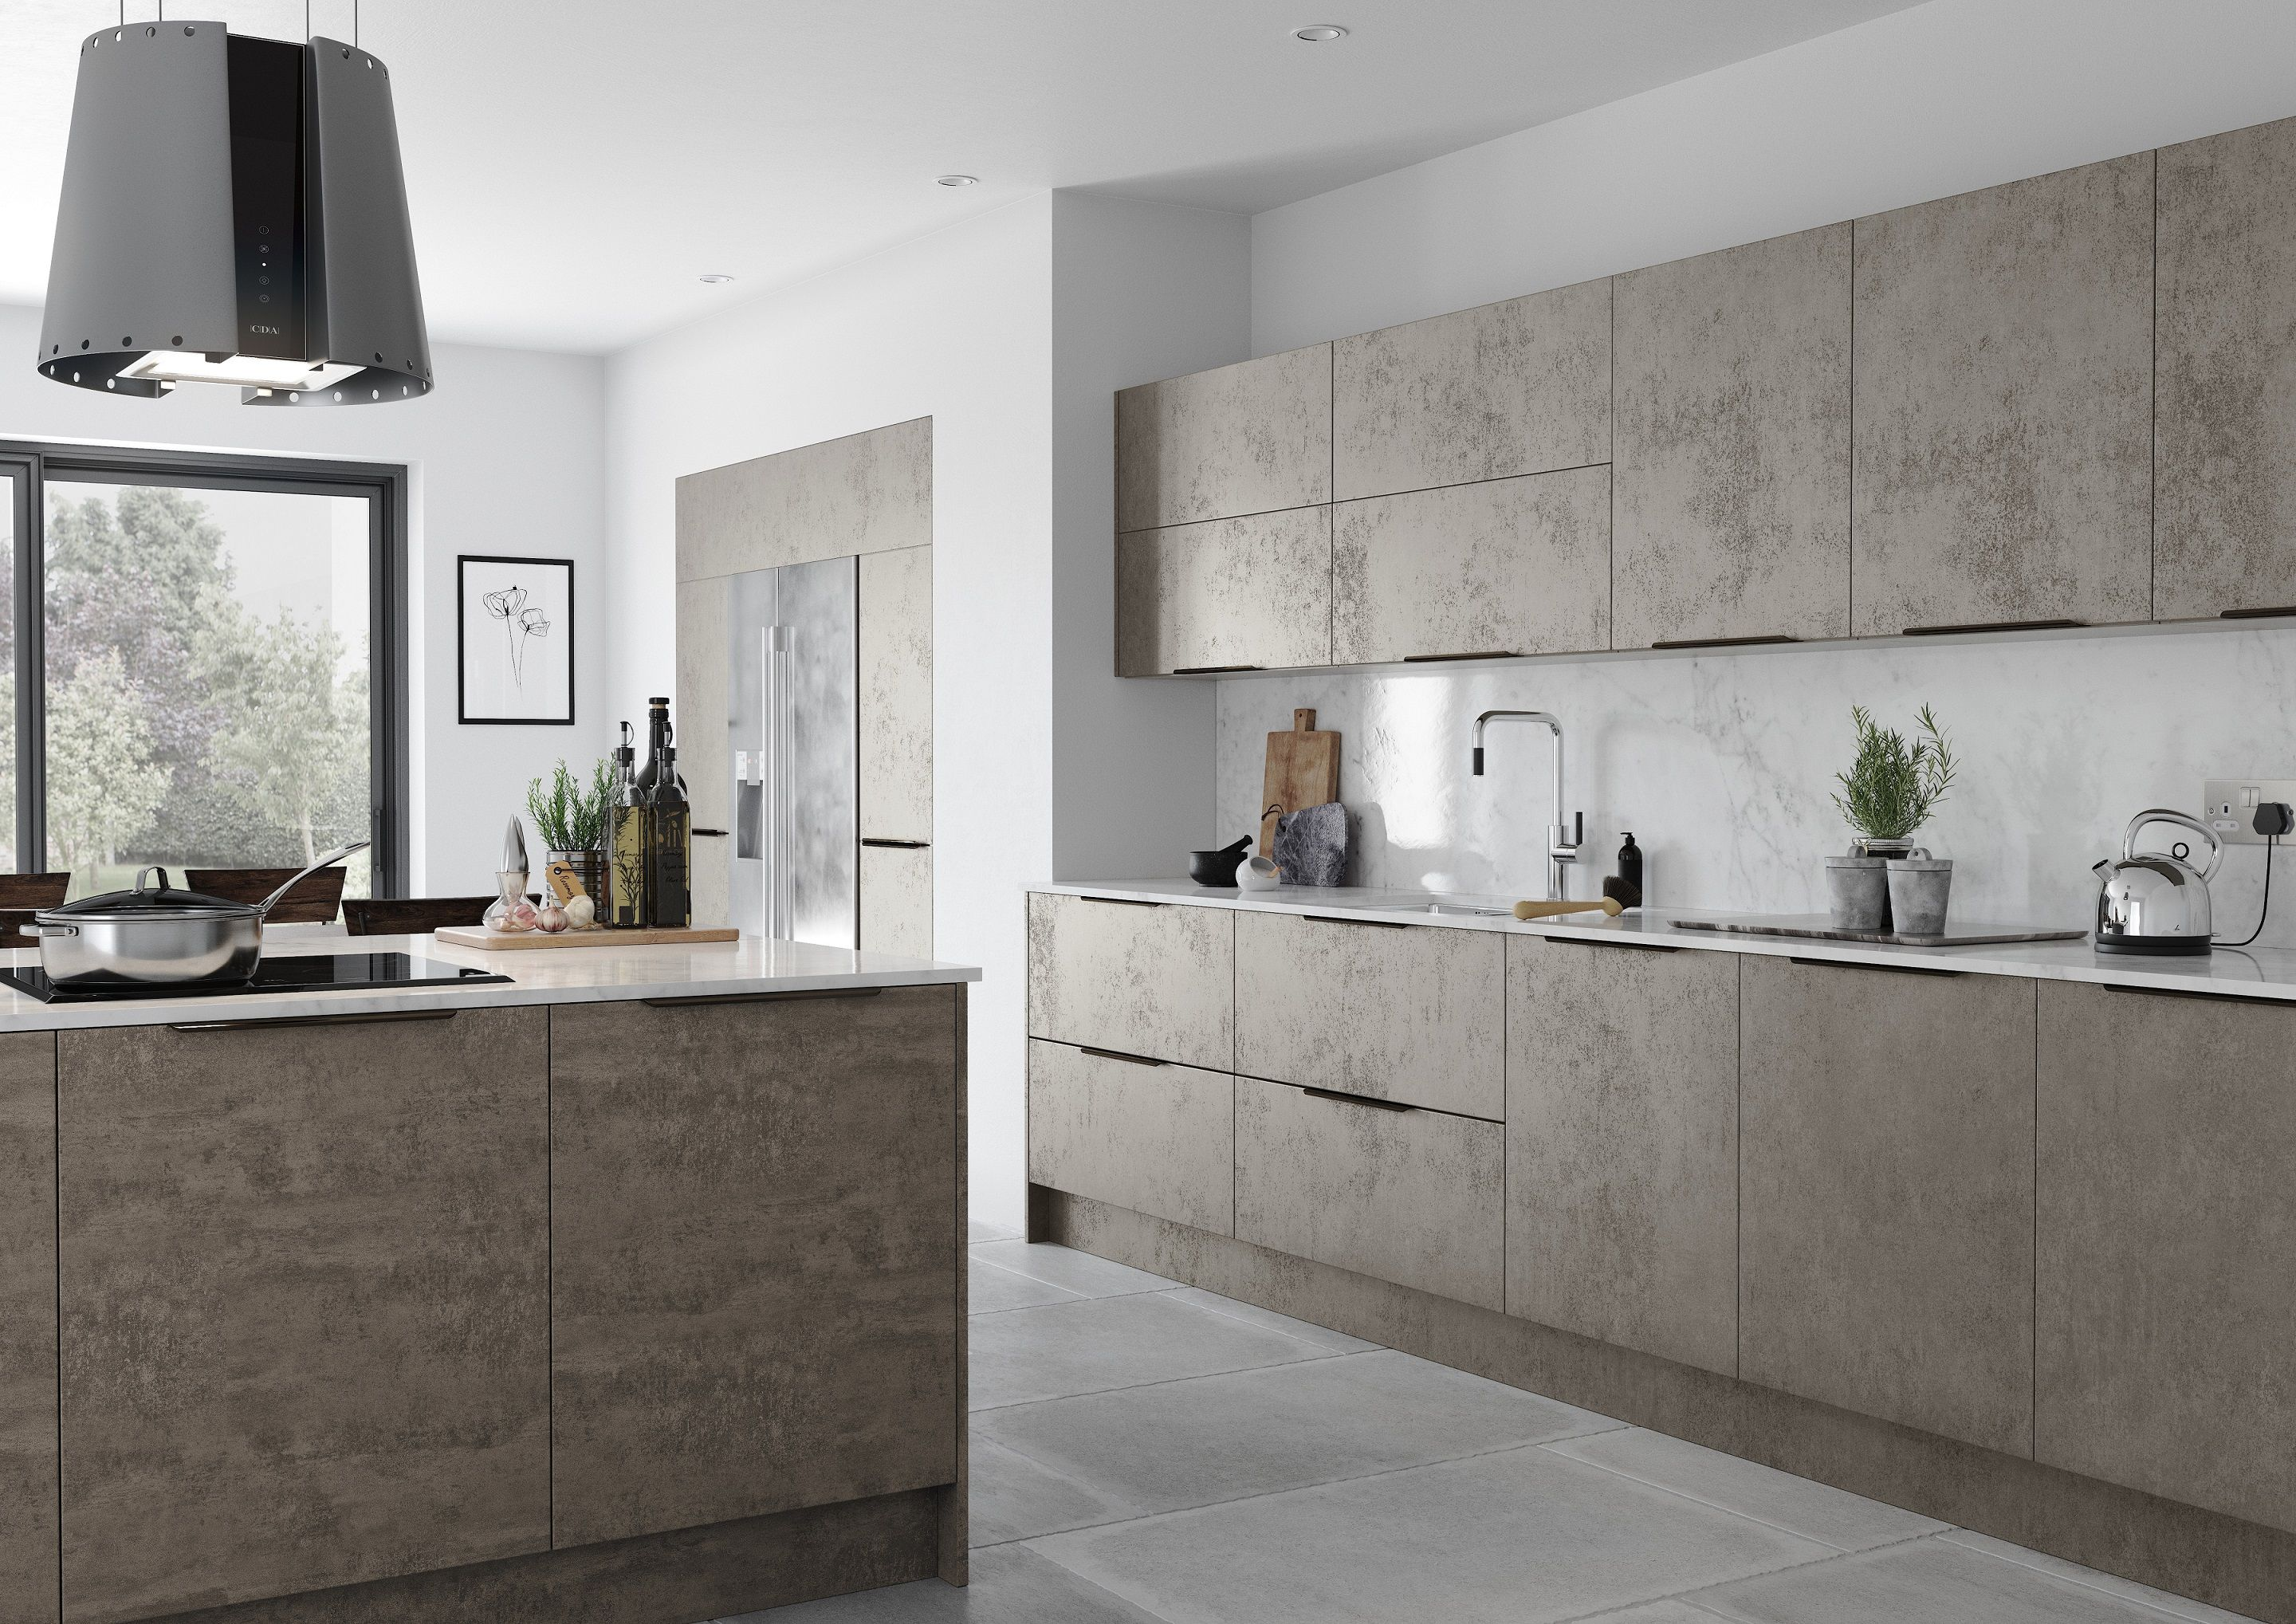 Concrete kitchens are a big trend in 2019. Would you